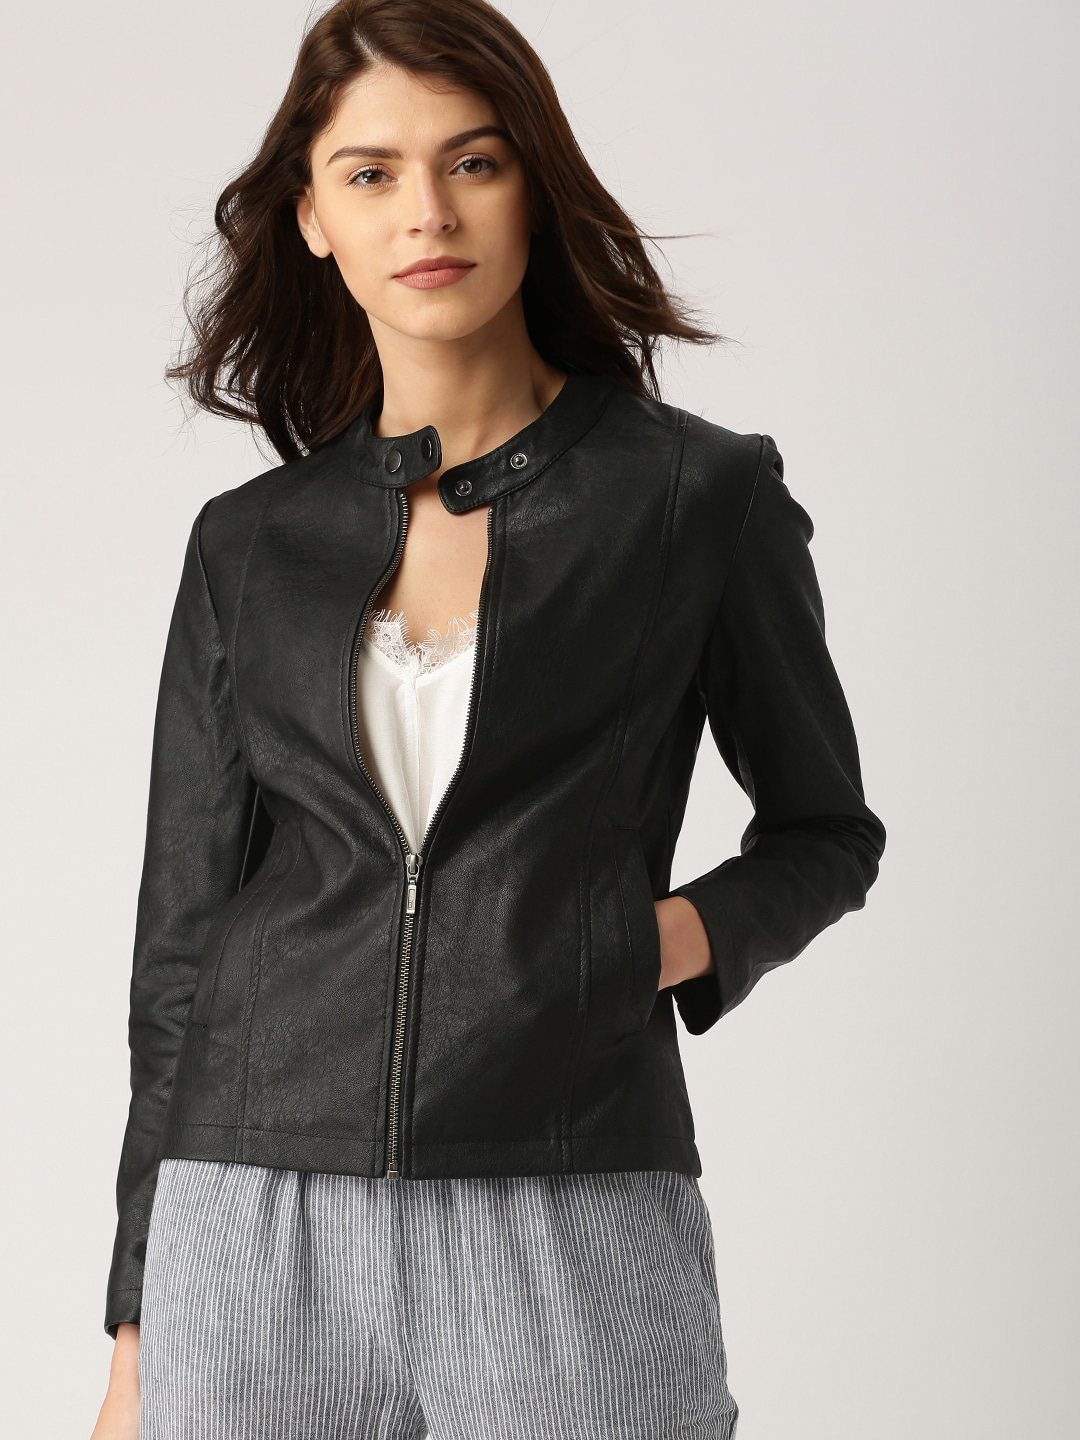 Jackets For Women Buy Casual Leather Jackets For Women Online